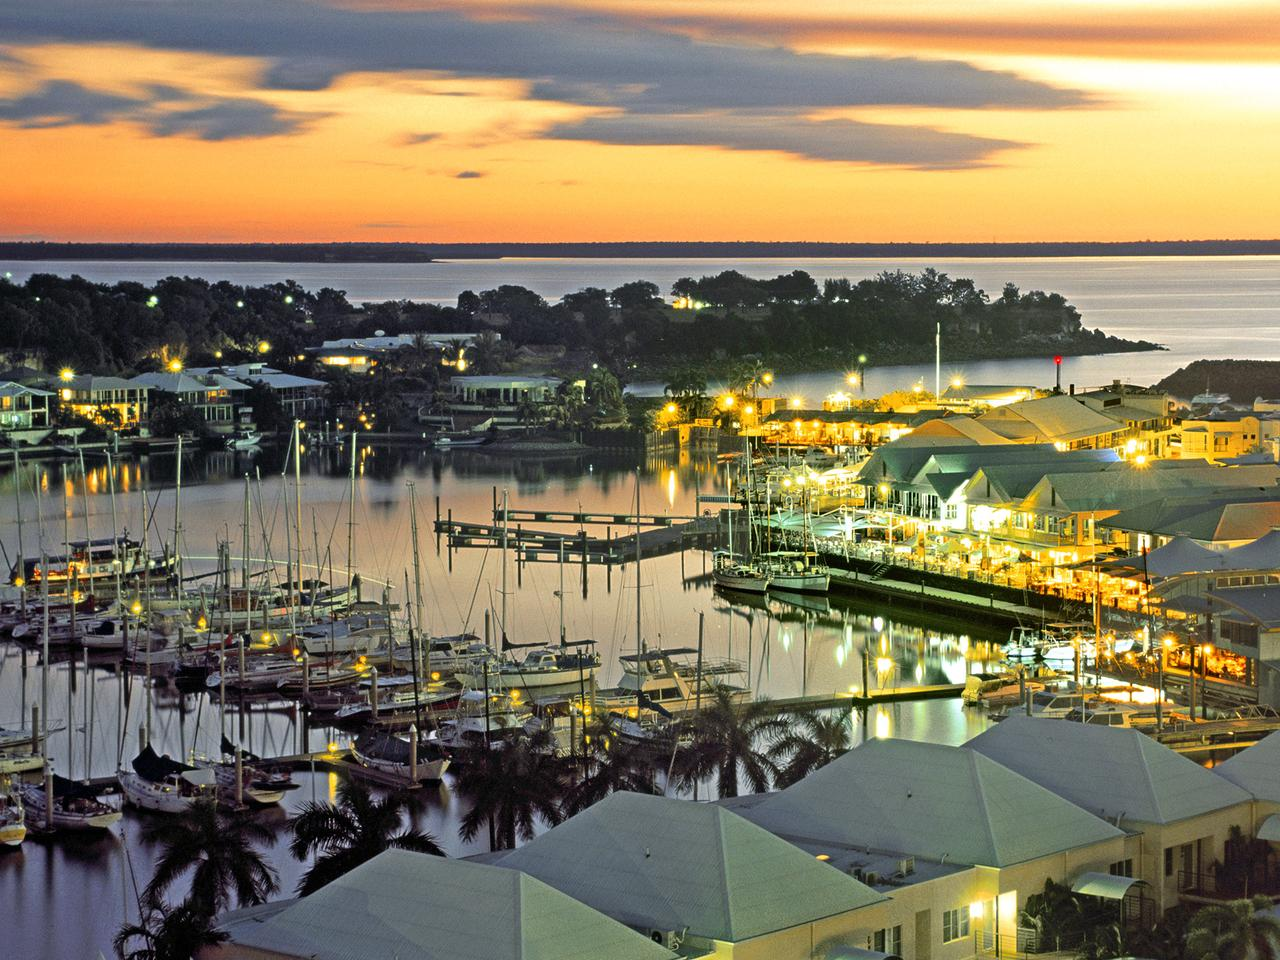 Supplied Travel Escape. Darwin Summer: (Cullen Bay): Cullen Bay Marina and restaurant precinct at sunset. Picture